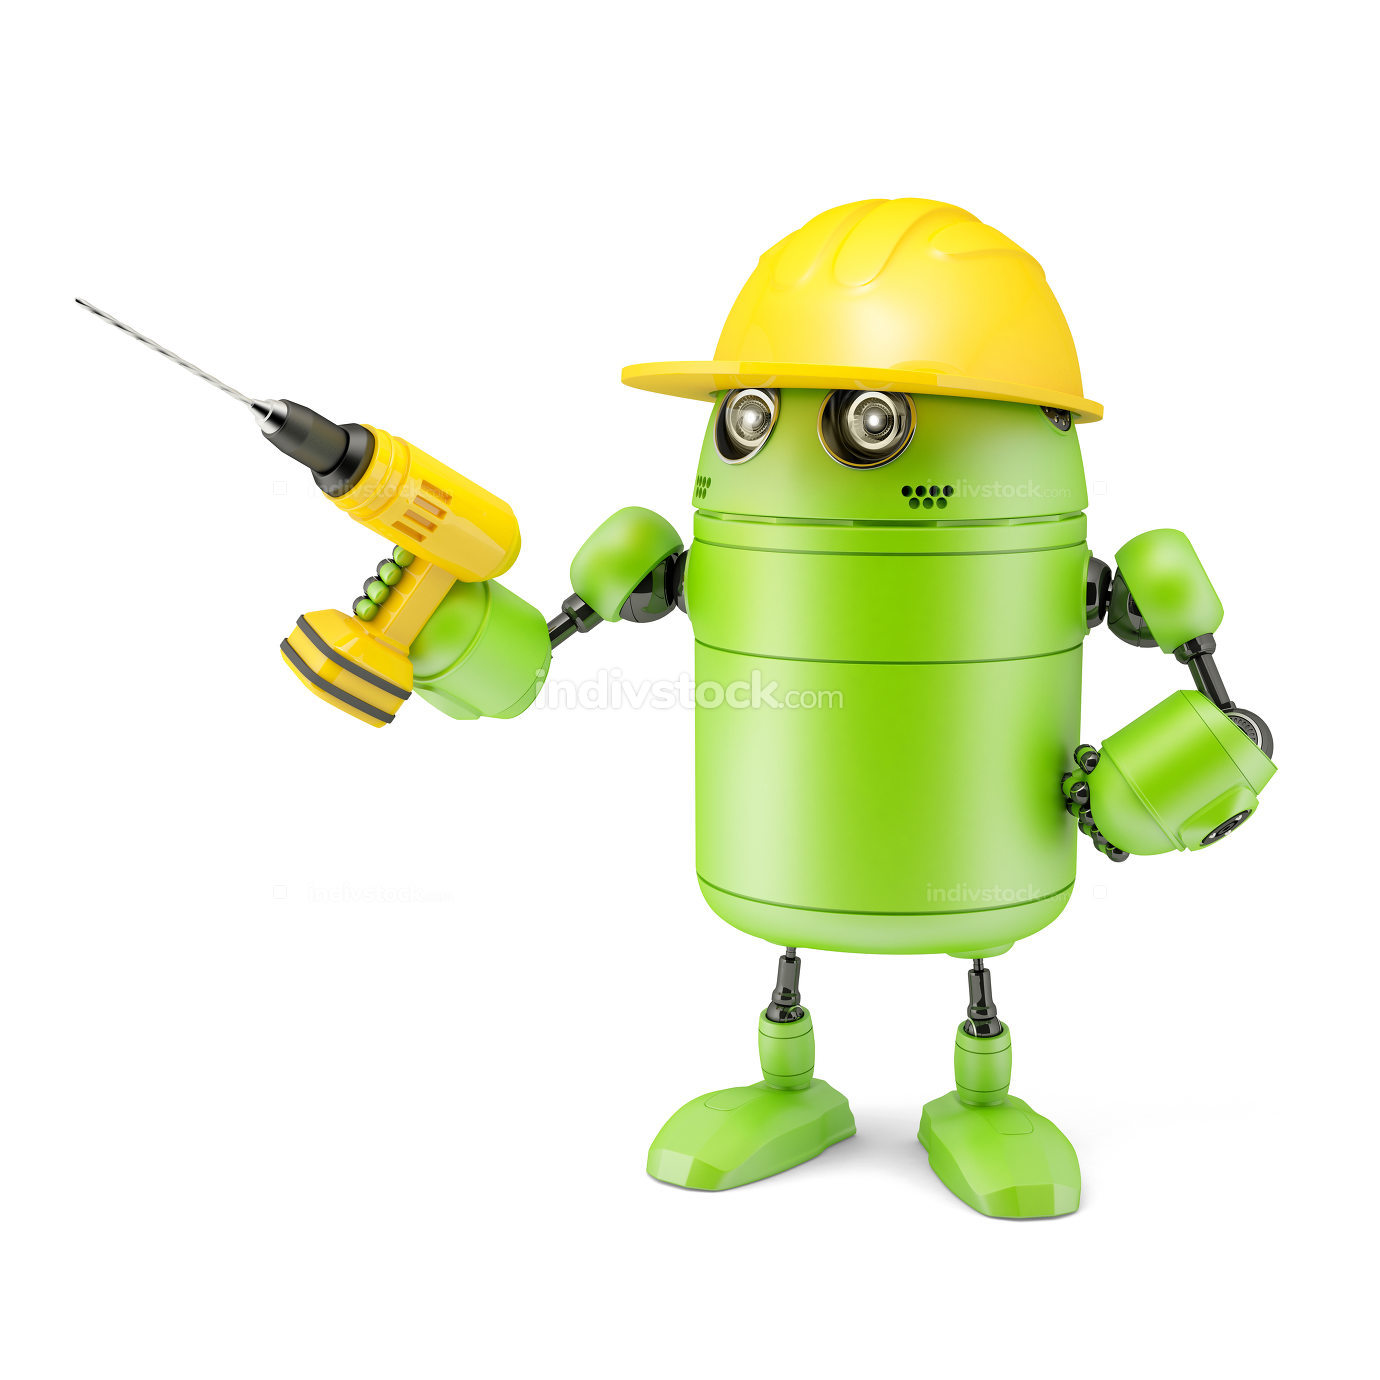 3? robot with drill. Technology concept